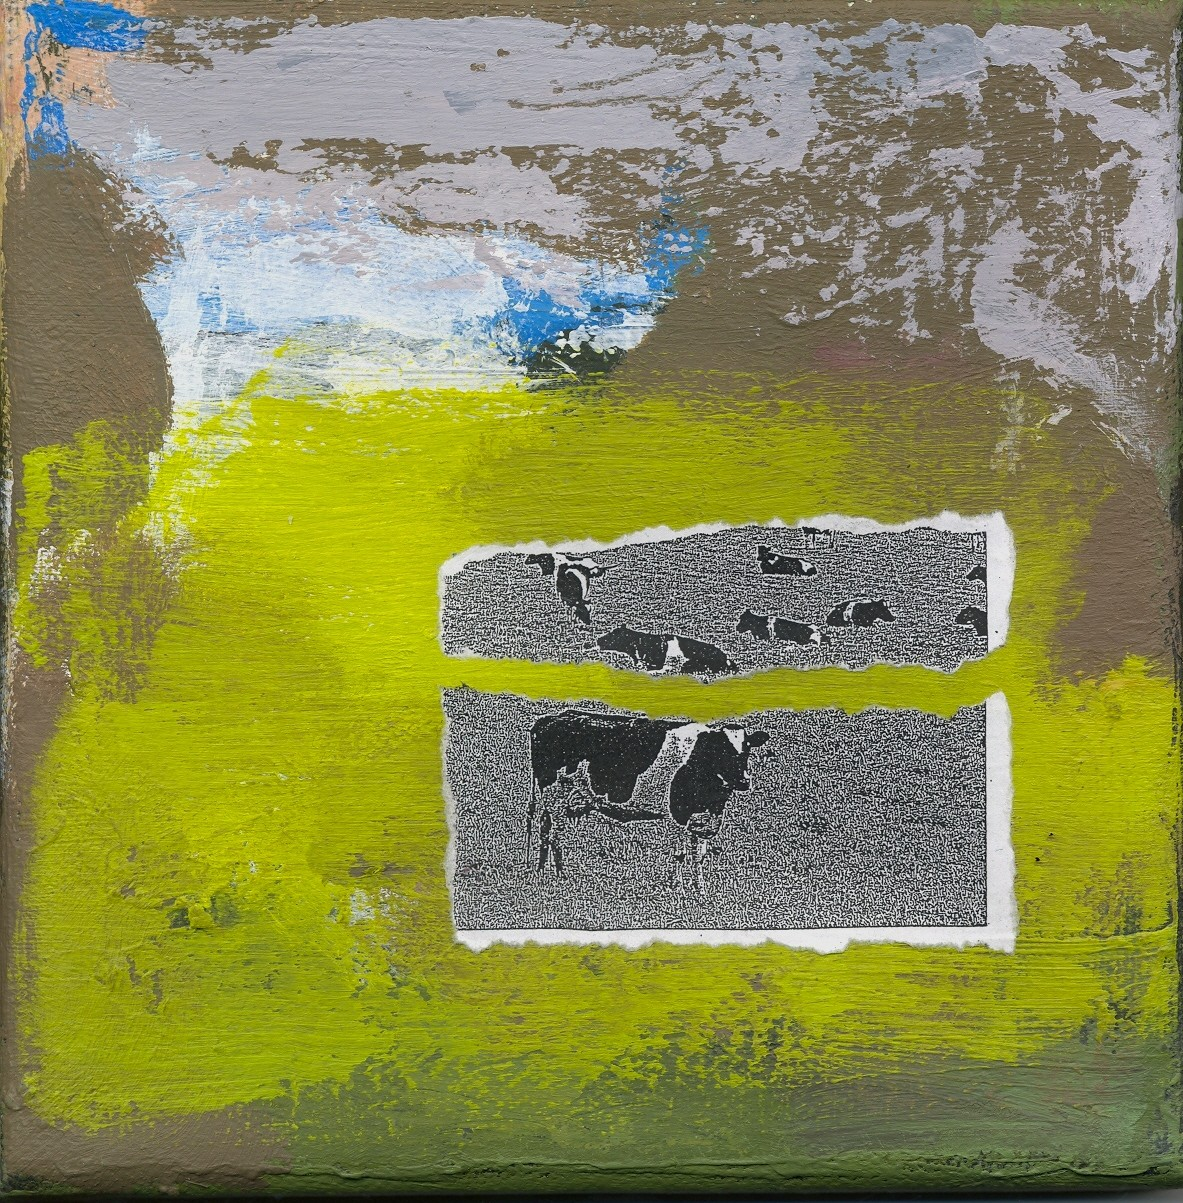 Cows in Greens